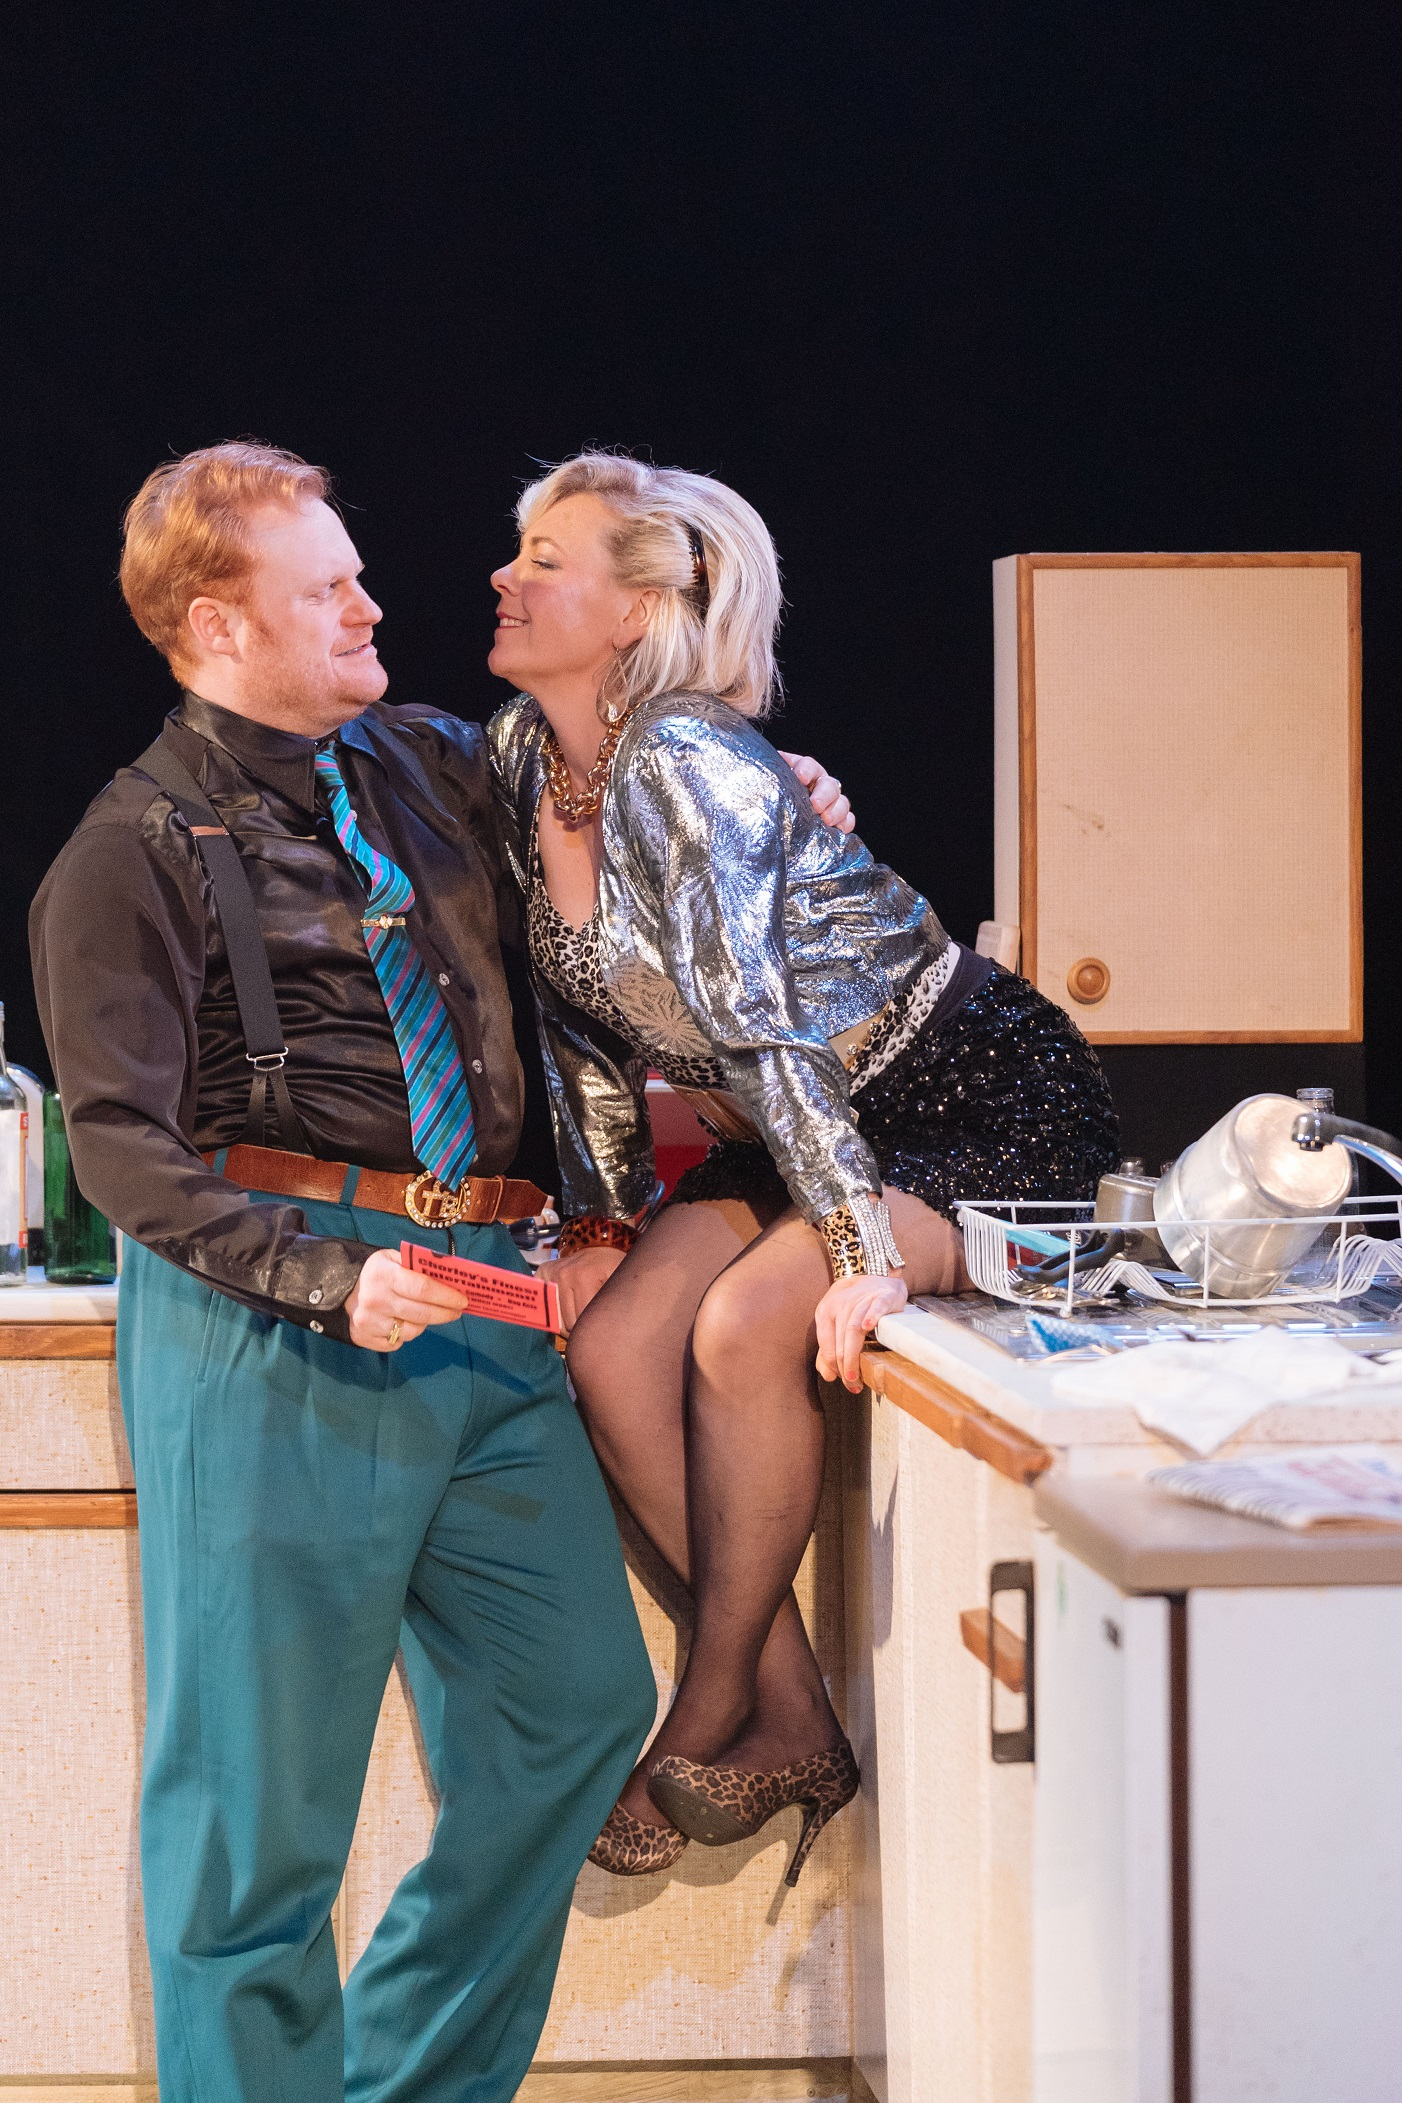 Simon Holland Roberts as Ray Say, Nicola Reynolds as Mari in The Rise and Fall of Little Voice at Theatr Clwyd_p.jpg